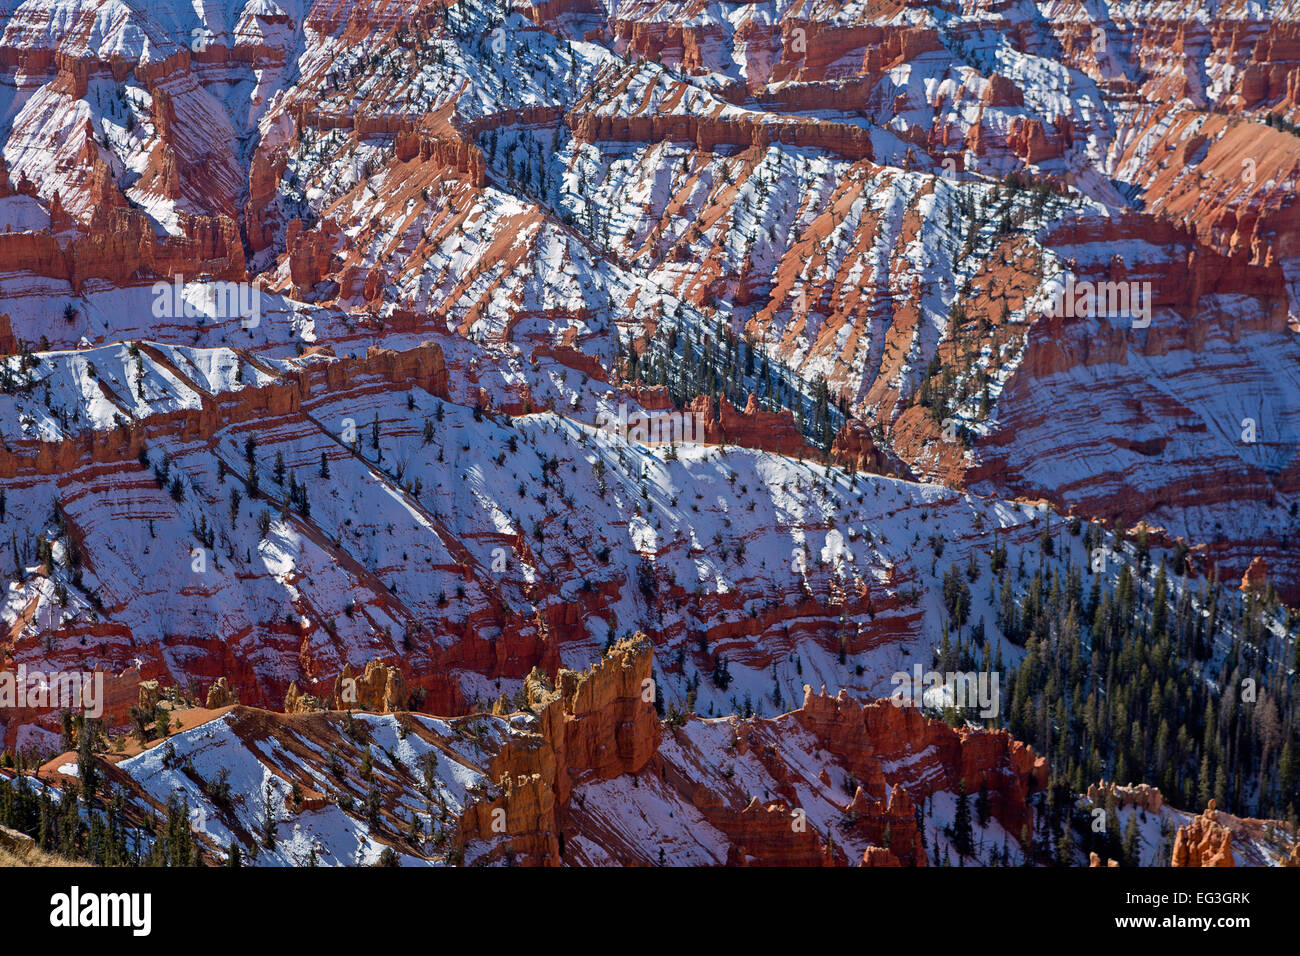 Snow covers Cedar Breaks National Monument in Utah in fall. USA - Stock Image